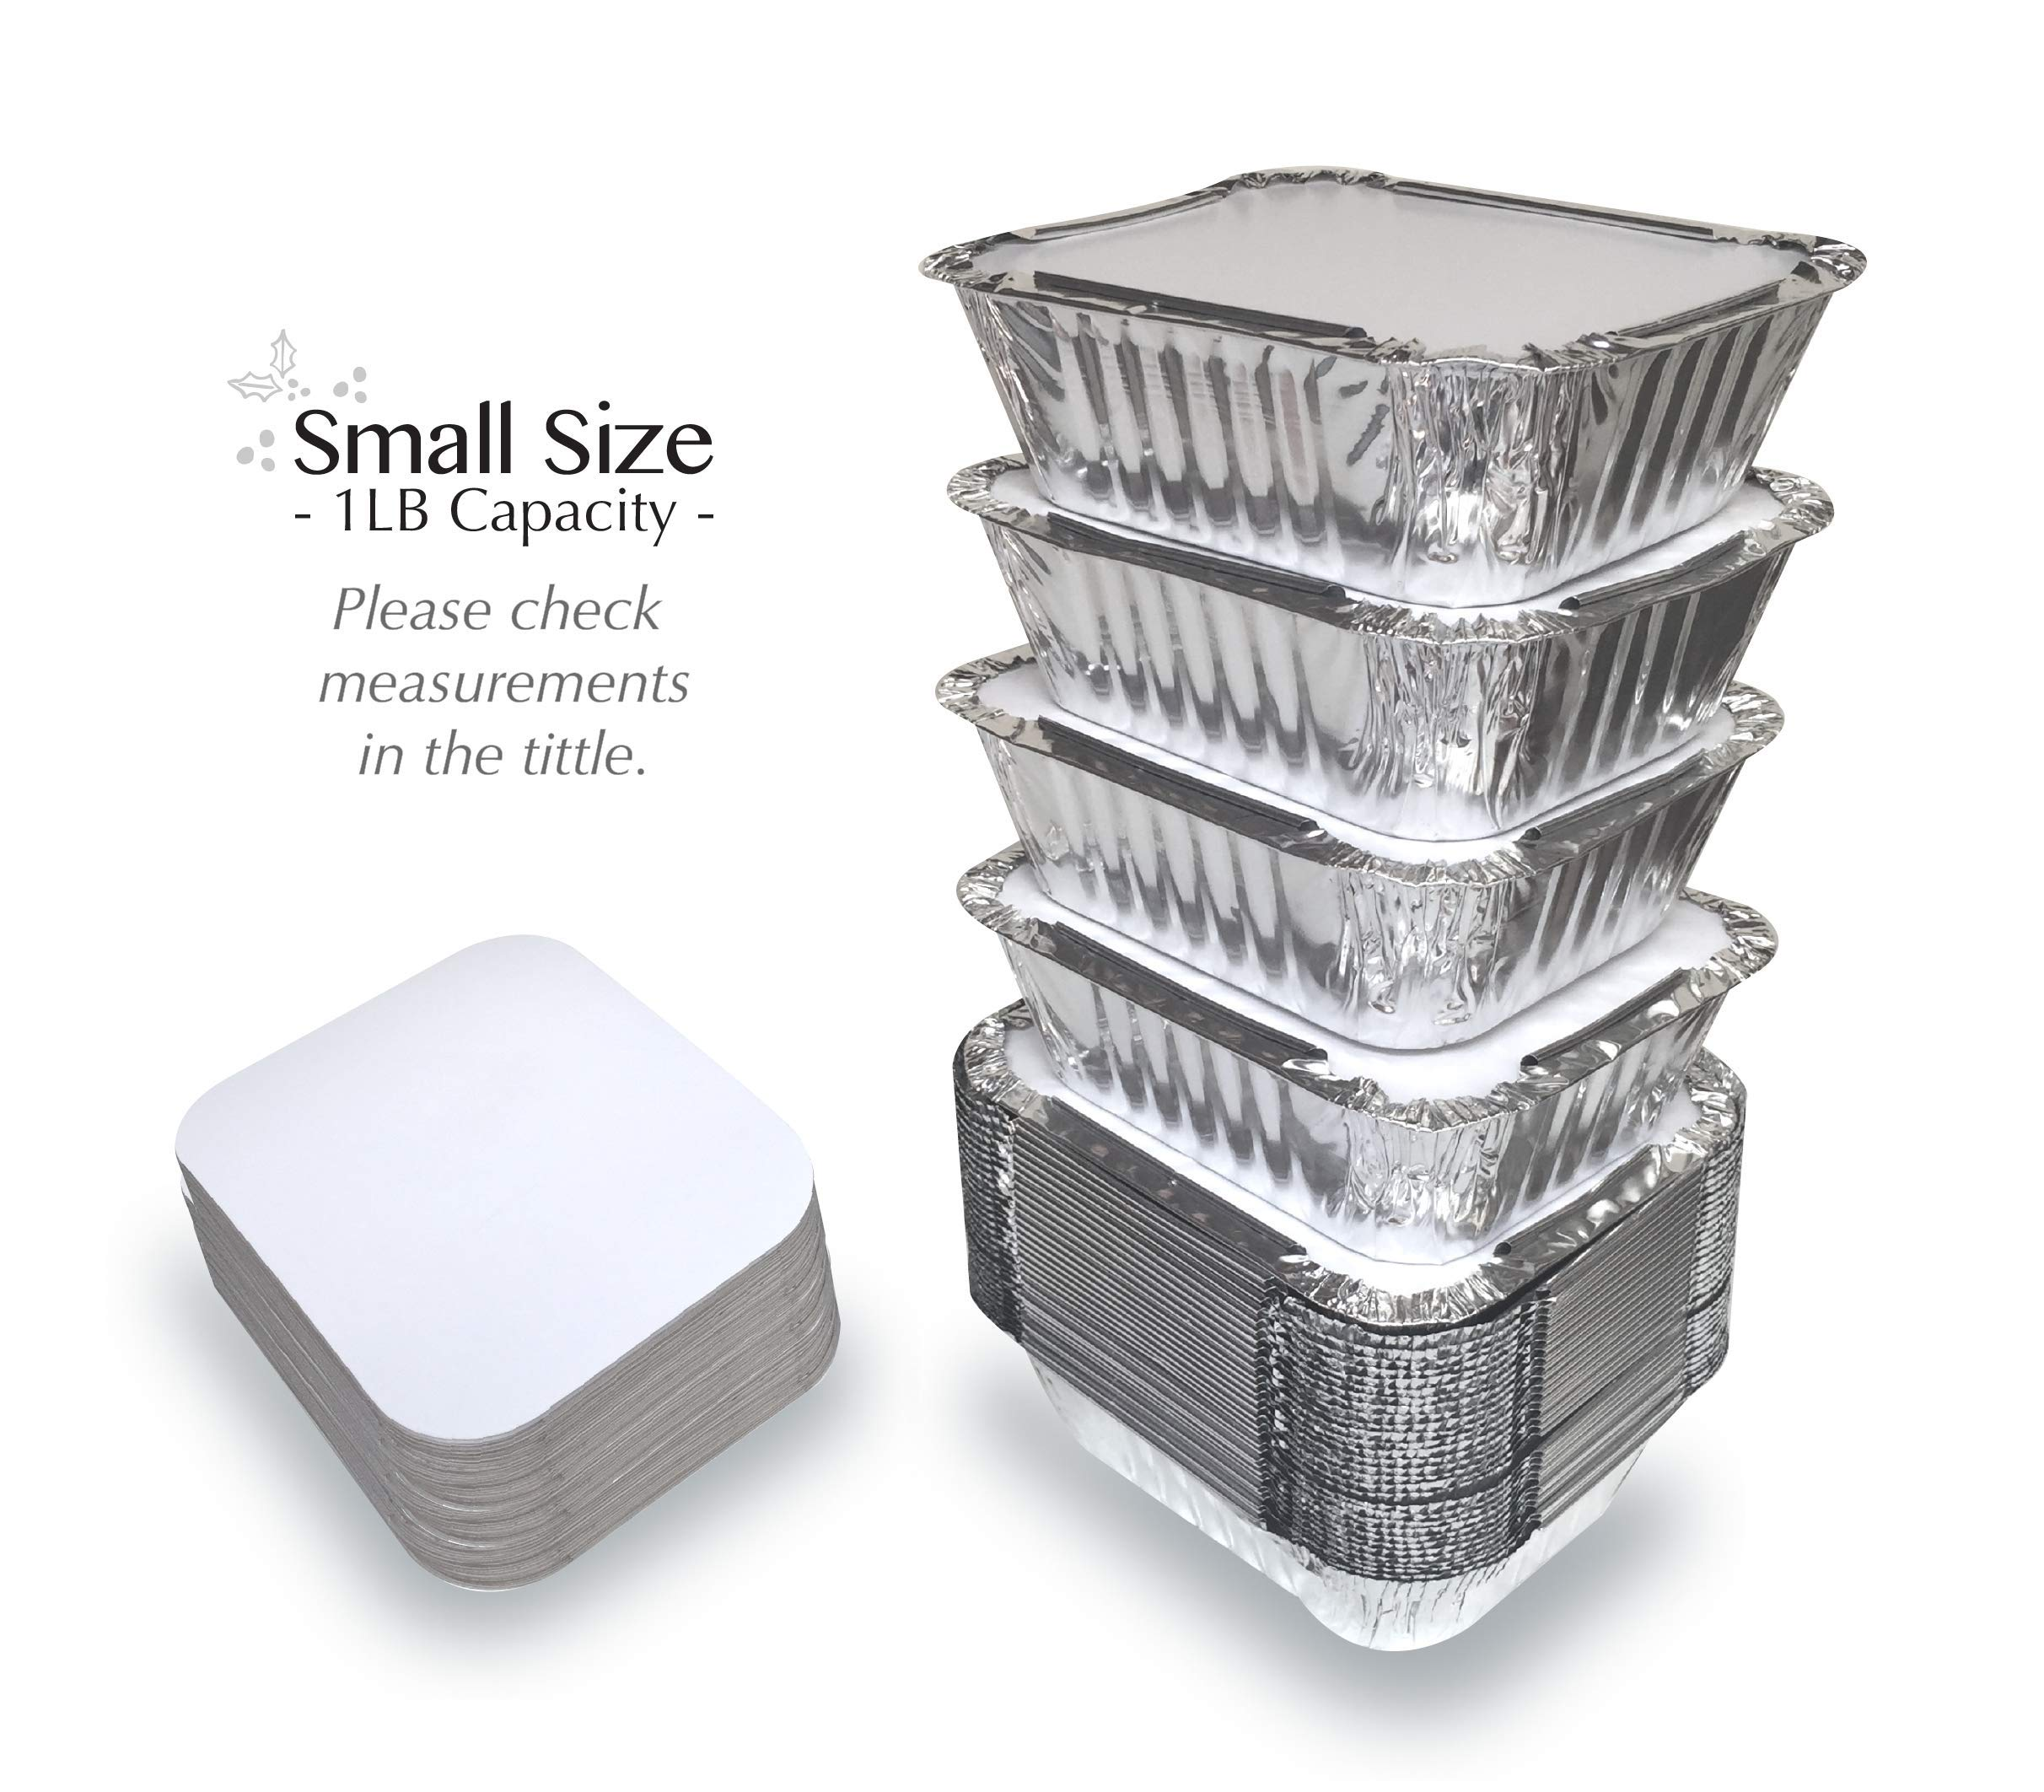 """55 PACK - 1LB Aluminum Foil Pan Containers with Lids Take Out Pans Food Containers Disposable Easy Pack From Spare – 1Lb Capacity 5.5"""" x 4.5"""" x 1.9"""" – SMALL Size"""